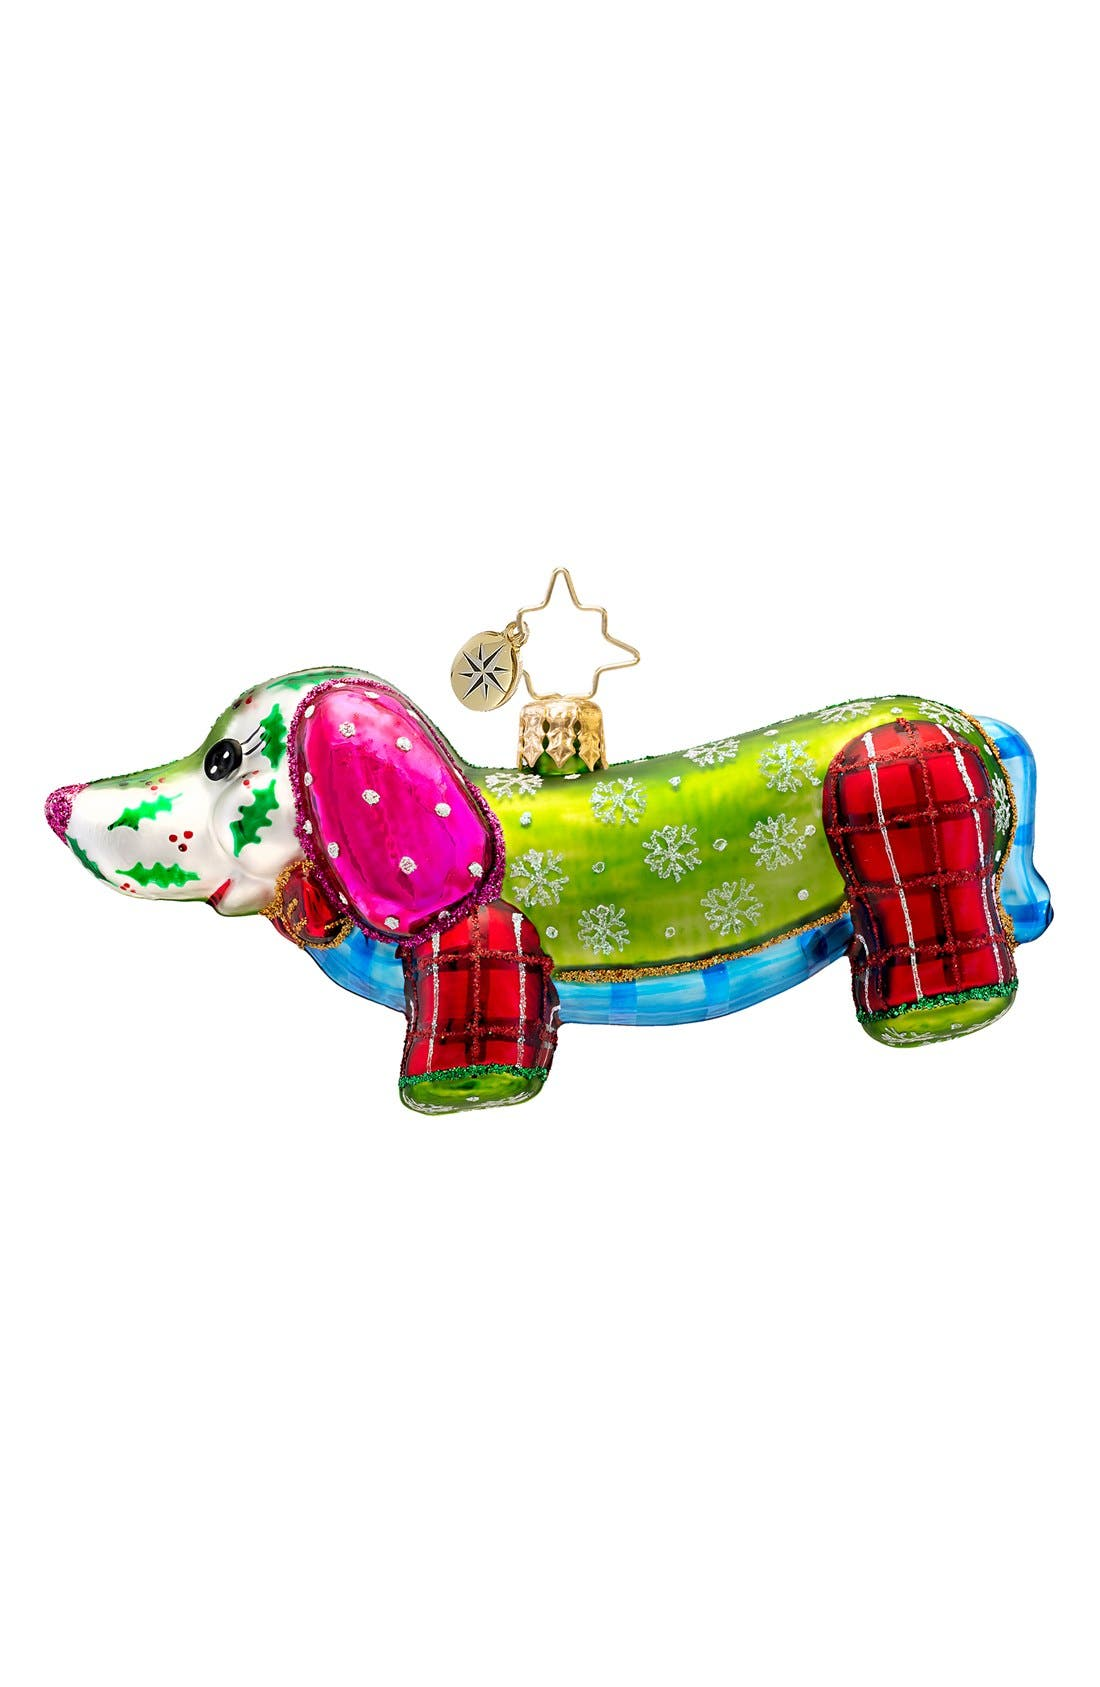 'Patchwork Winnie' Handcrafted Glass Dachshund Ornament,                             Main thumbnail 1, color,                             300